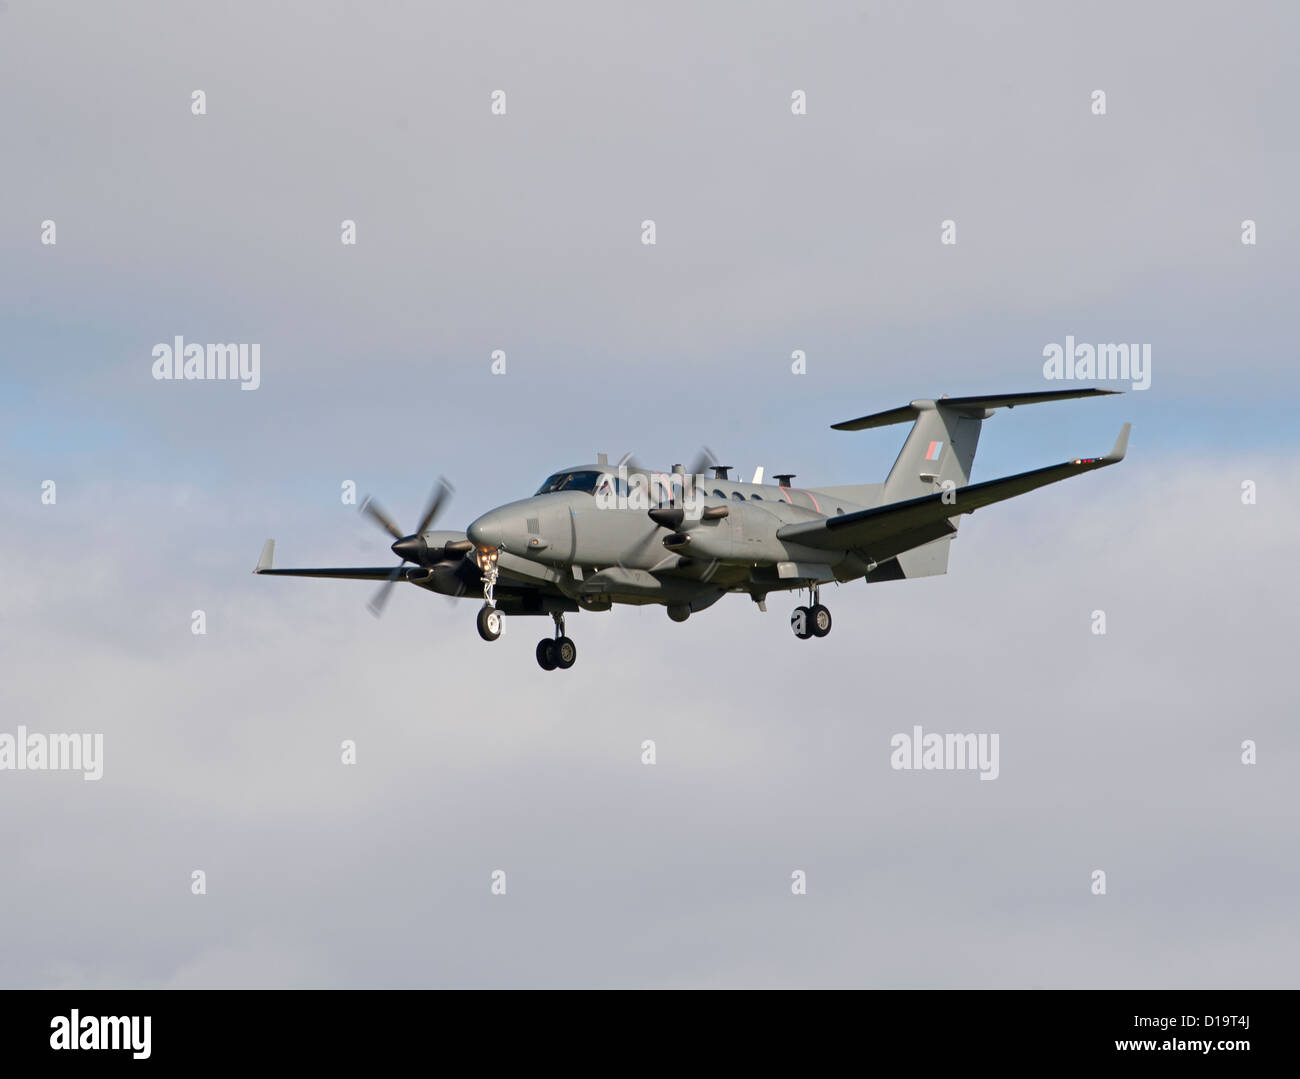 UK-AIR FORCE Hawker Beechcraft Shadow R1. (350CER). RAF Lossiemouth.  SCO 8888 - Stock Image